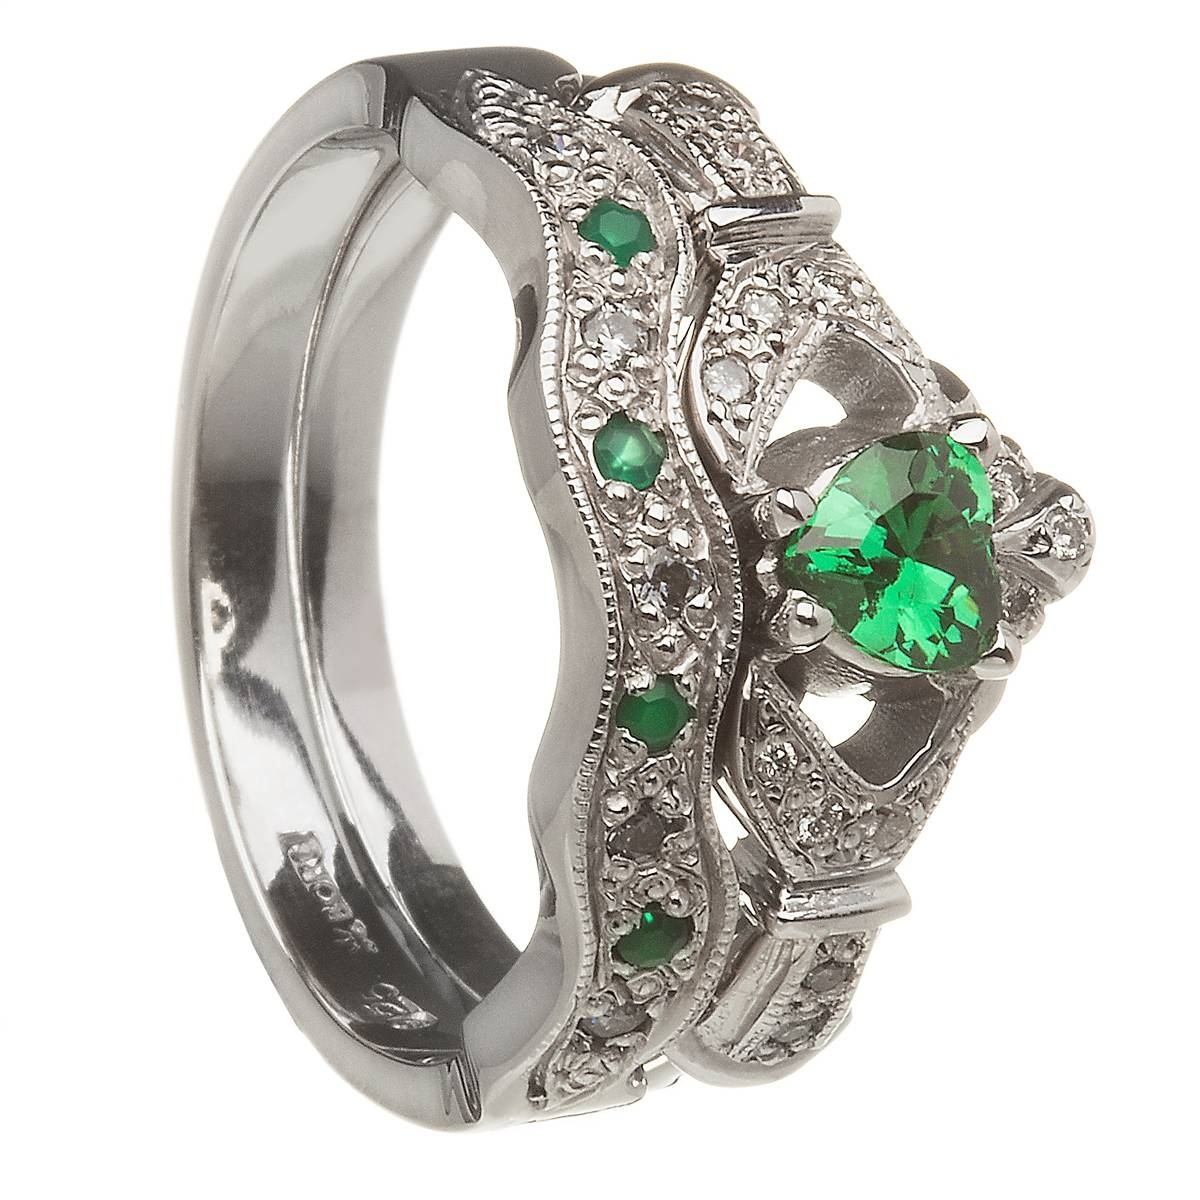 14K White Gold Emerald Set Heart Claddagh Ring & Wedding Ring Set Intended For Diamond Claddagh Engagement & Wedding Ring Sets (View 1 of 15)